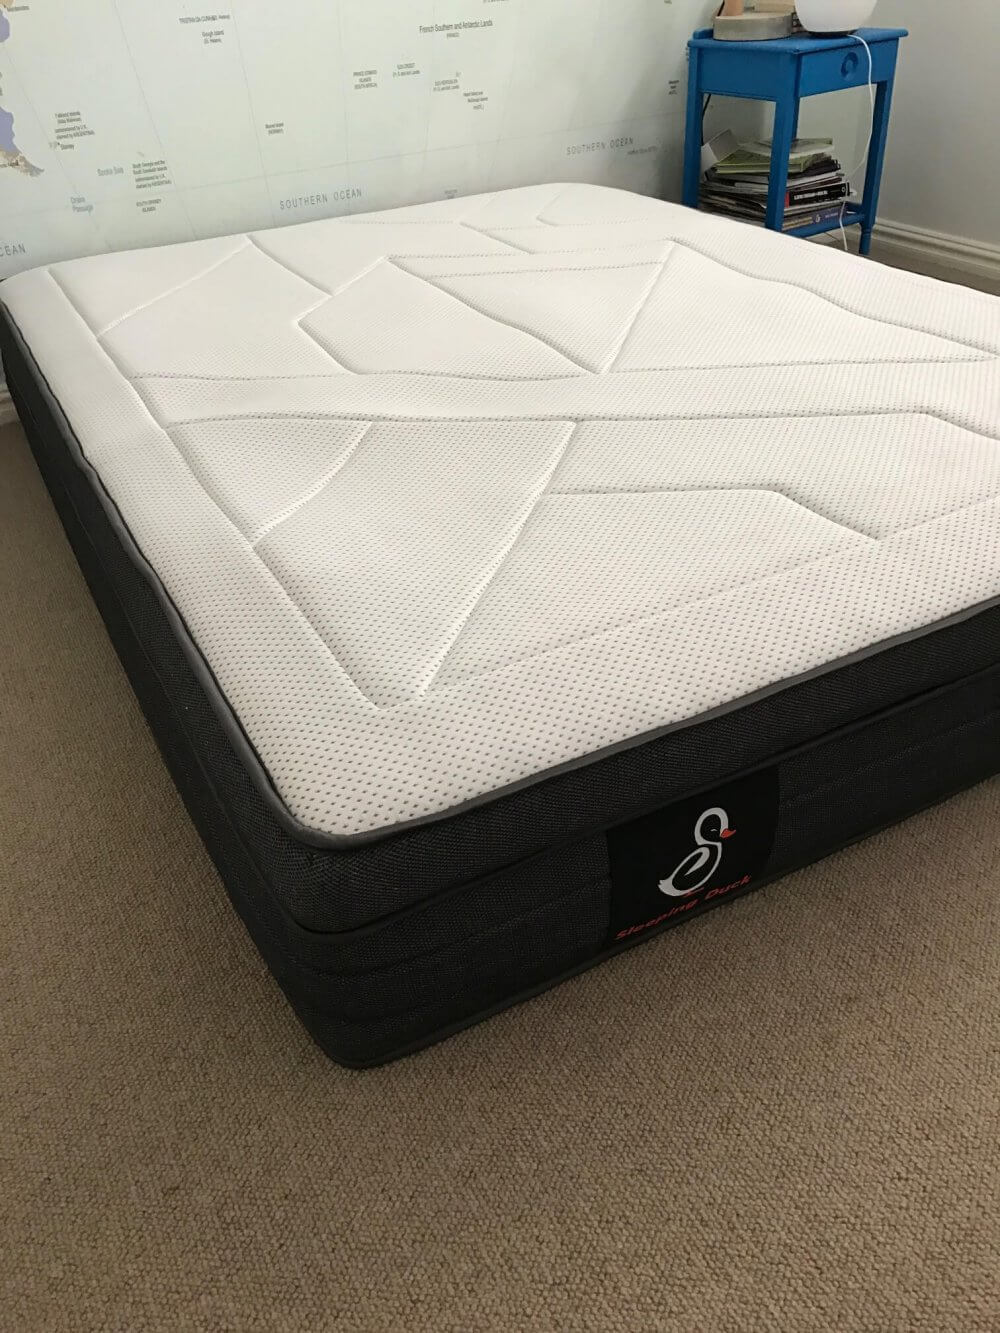 Fresh It us a deep mattress too and we could see the top layer is actually three layers of ultra fortable ultra breathable and ultra cool materials